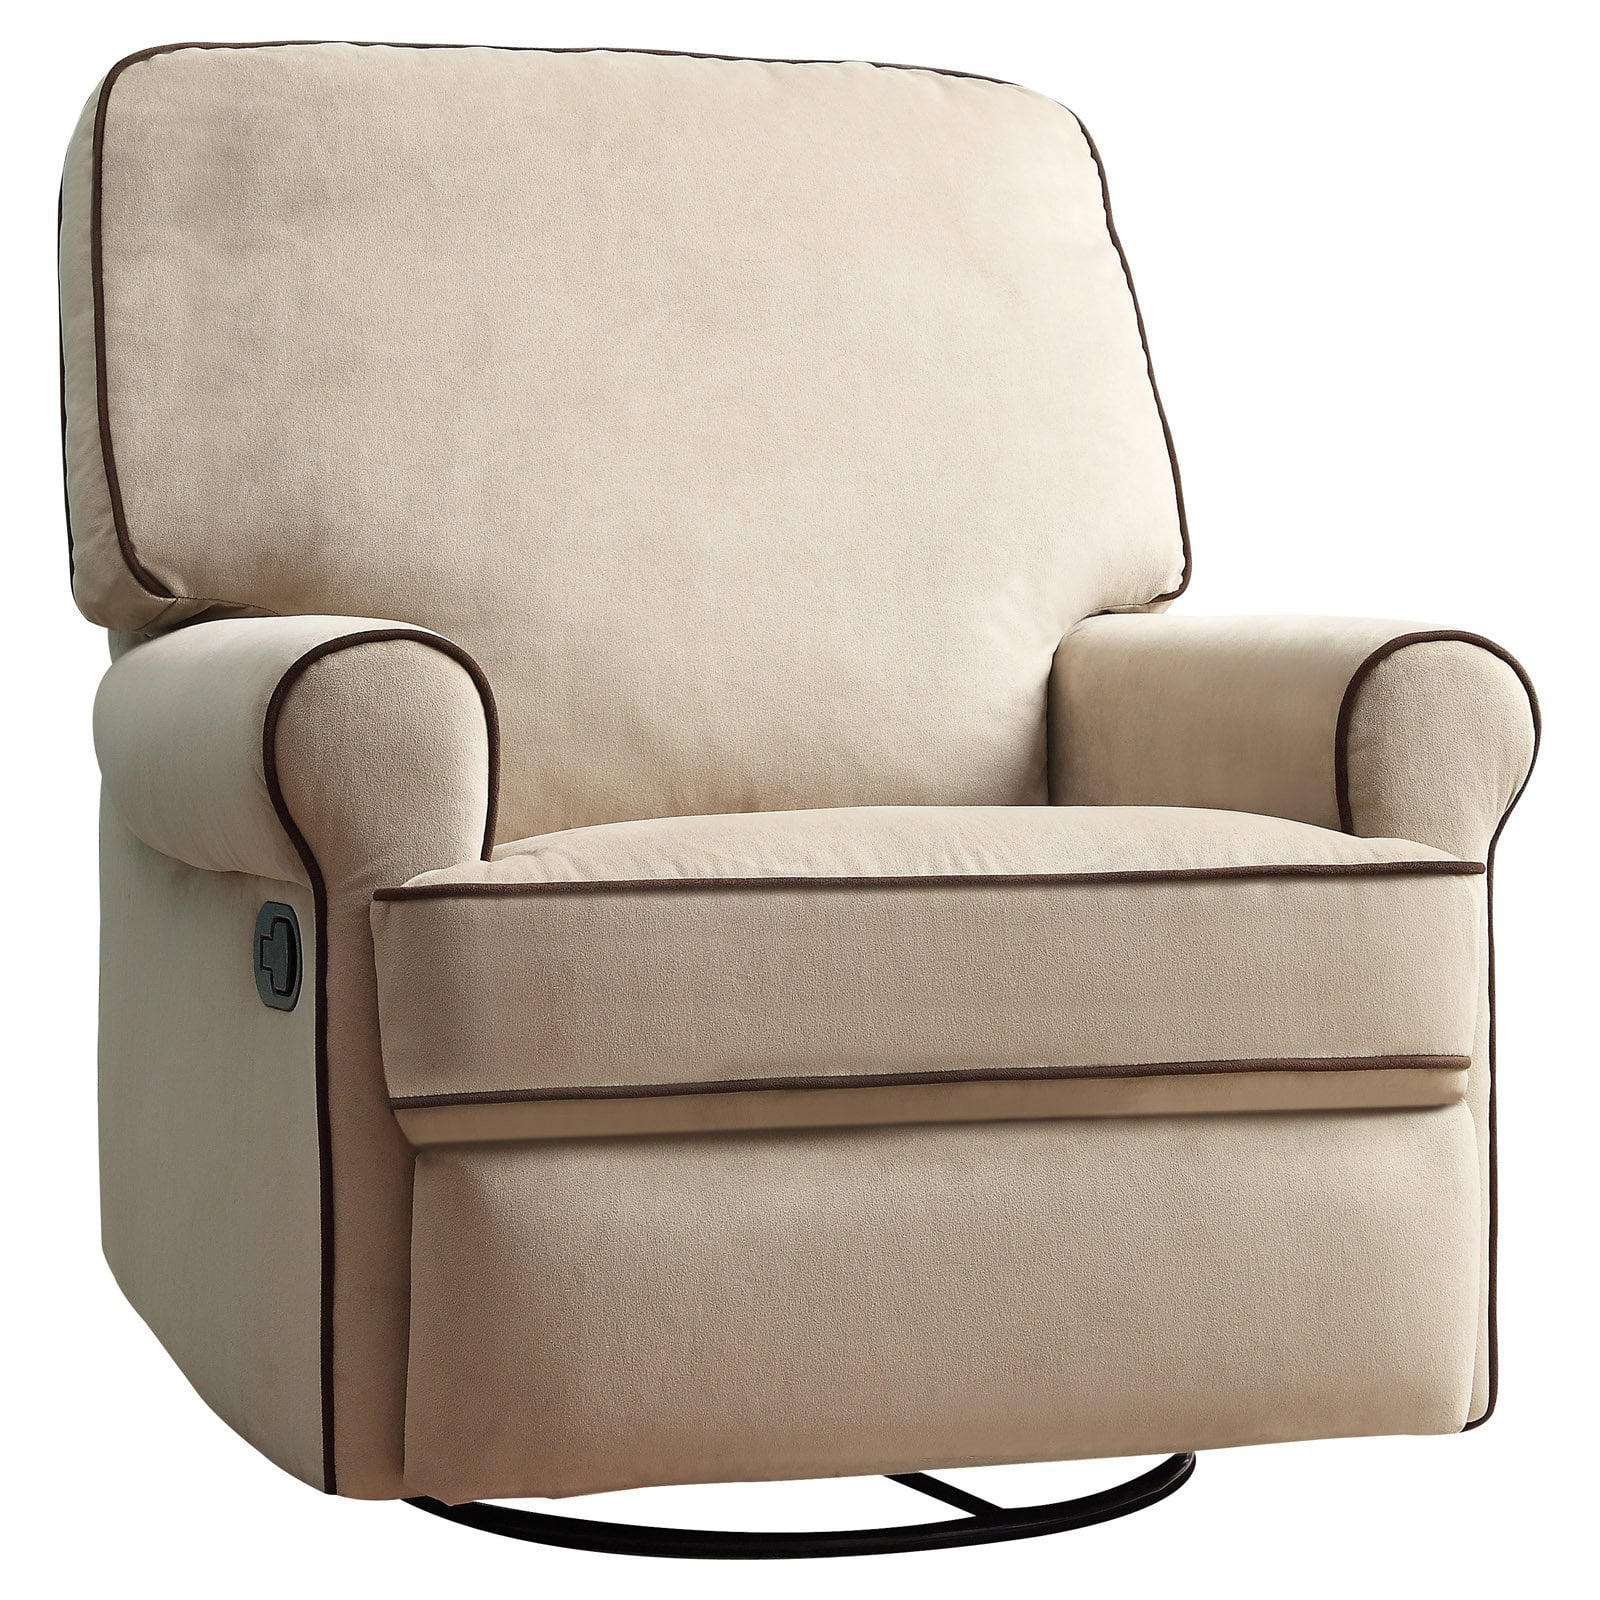 Home Meridian International Birch Hill Swivel Glider Recliner Beige with Stella Contrast Piping by Pri